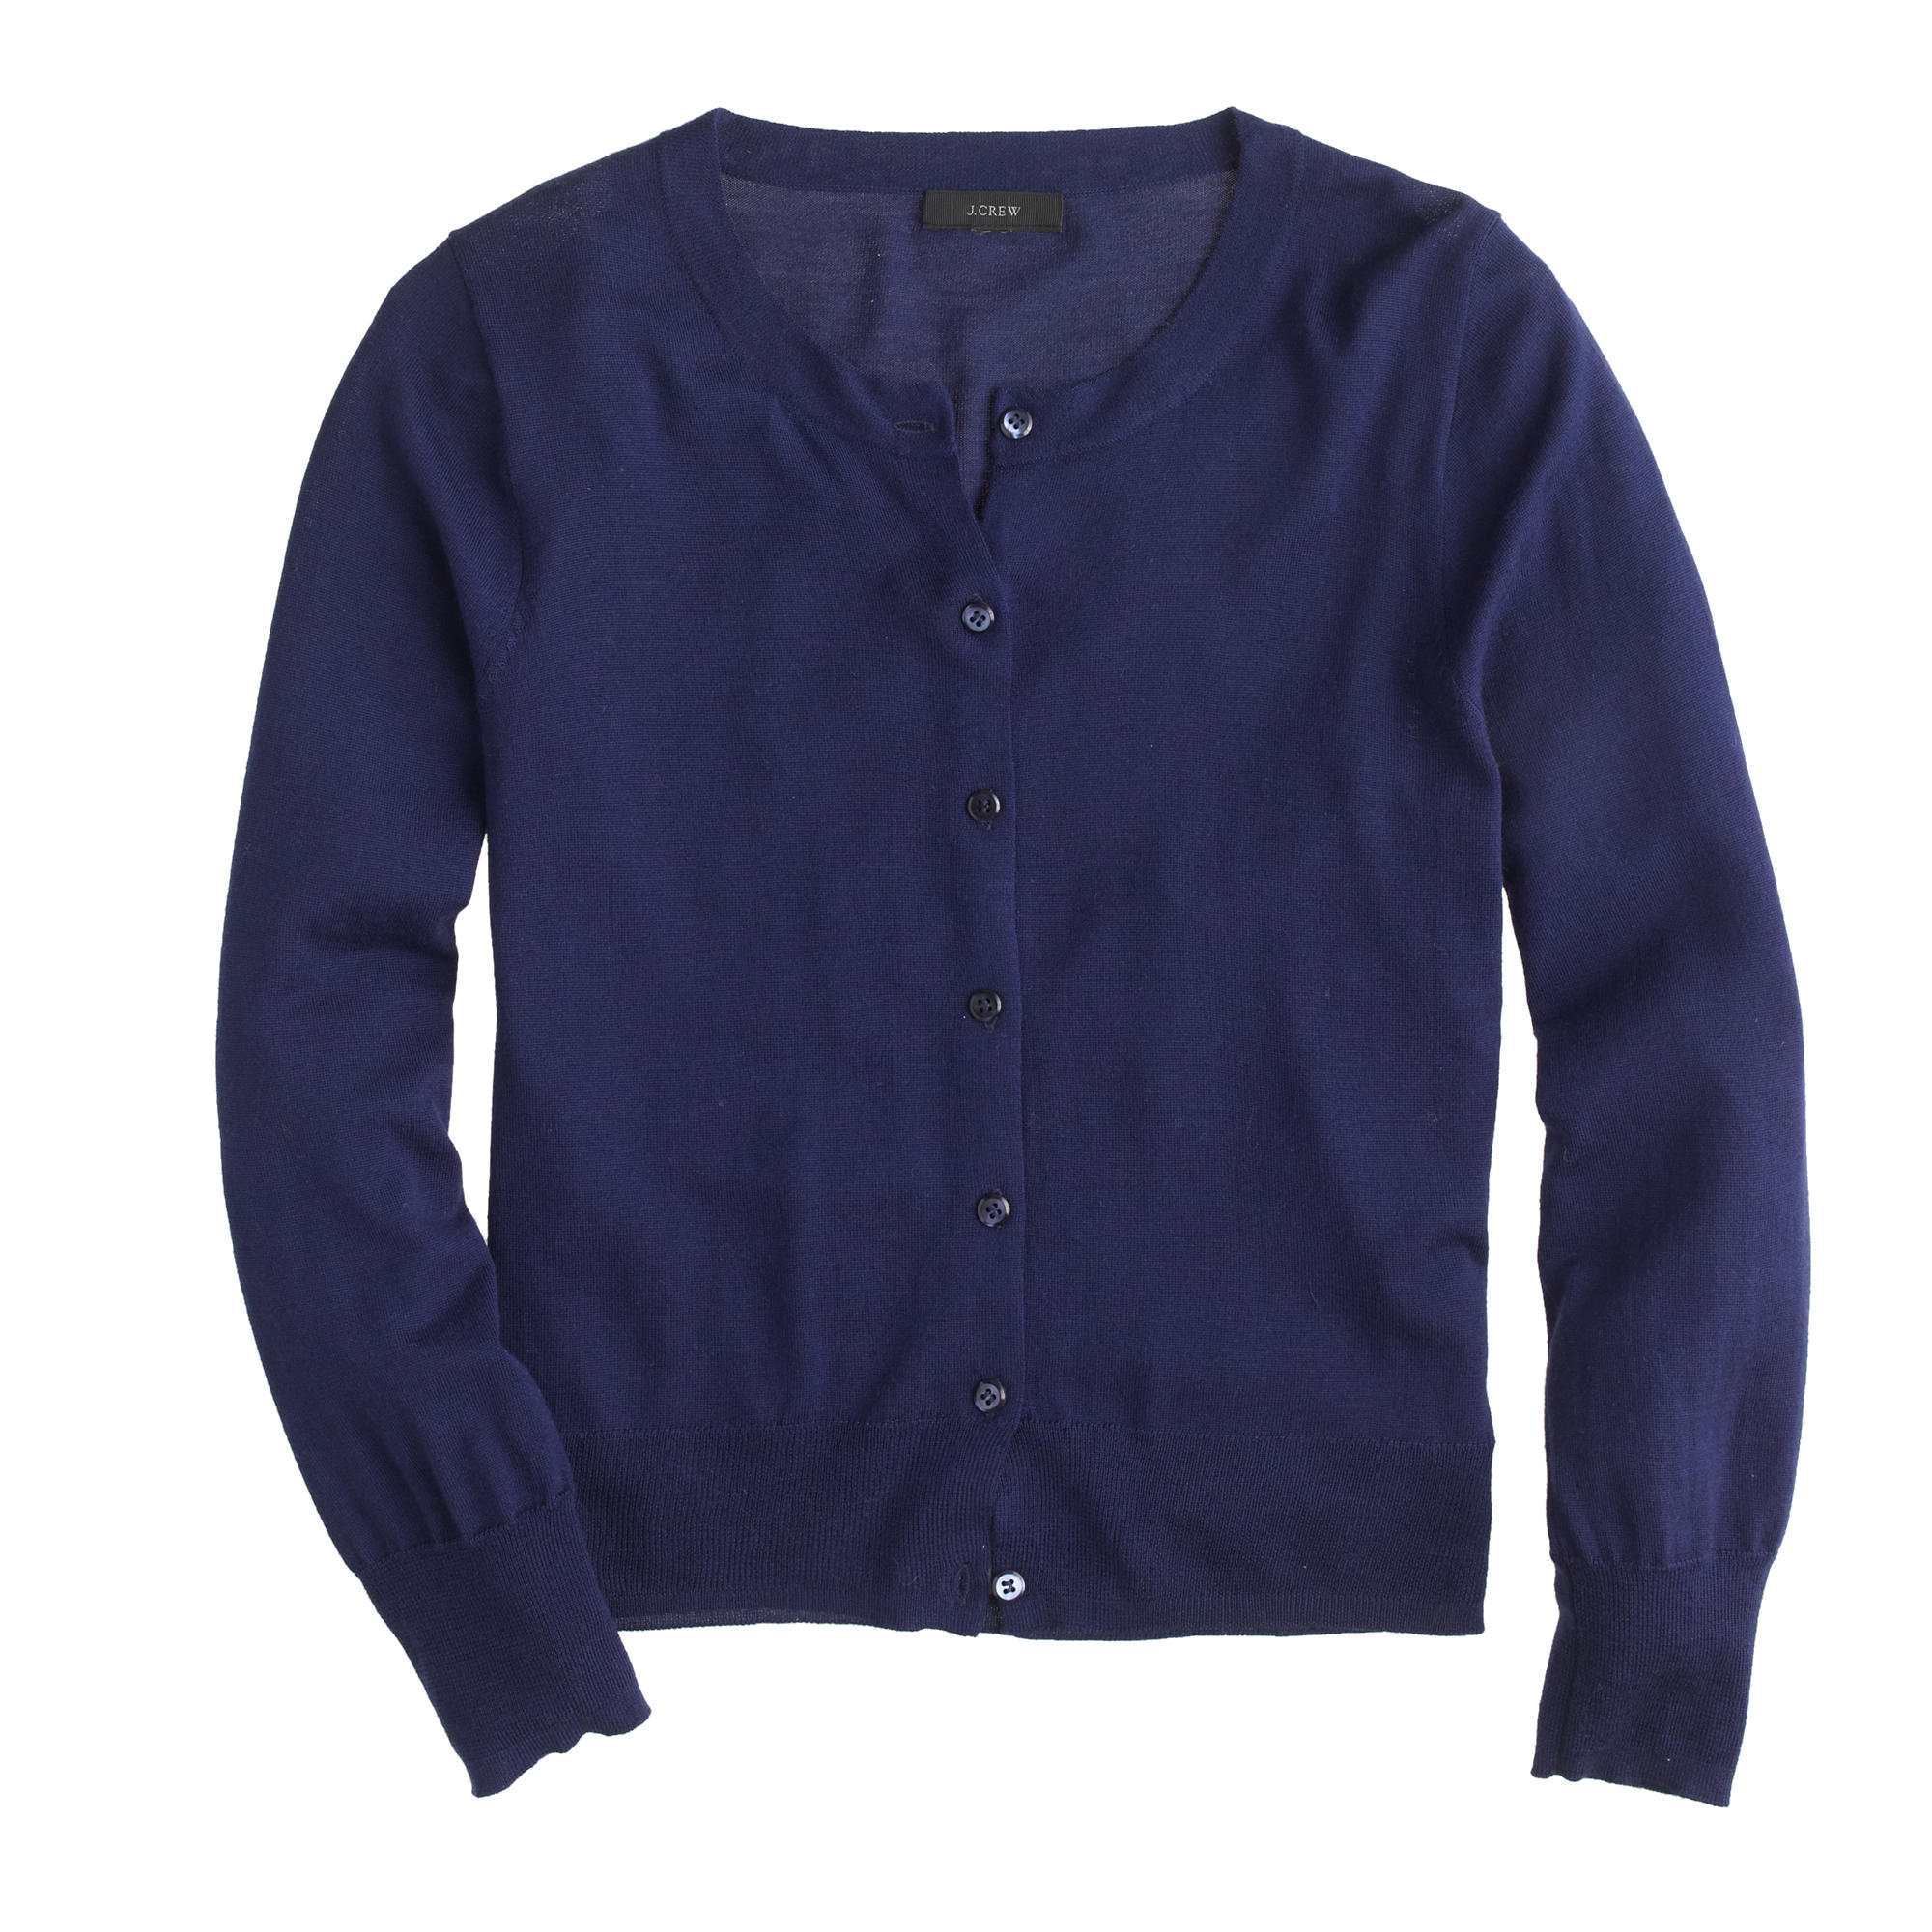 J Crew Tilly Sweater Review 111